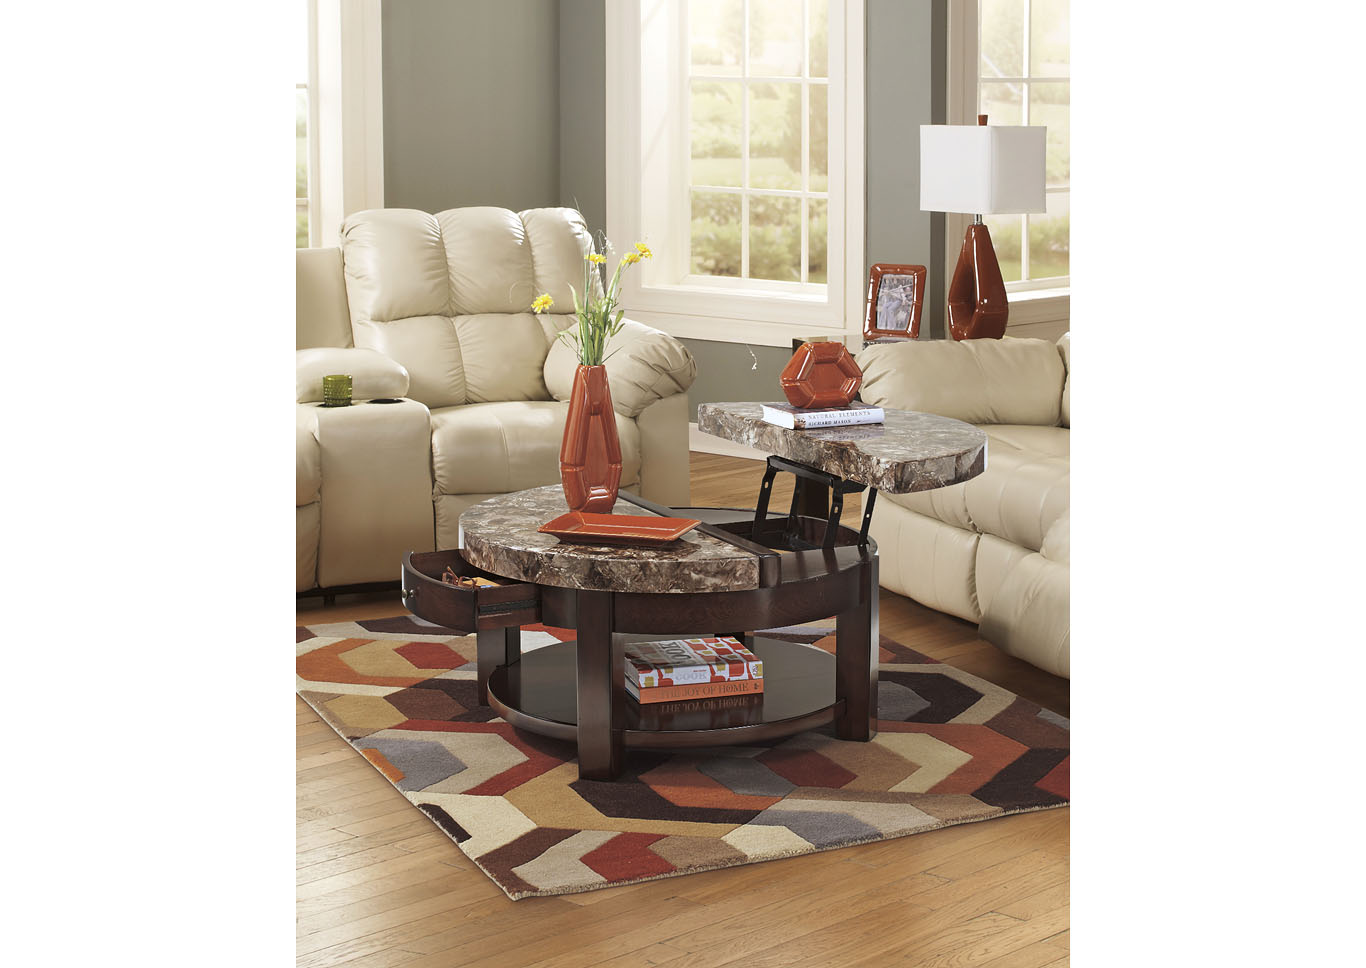 Roses Flooring And Furniture Round Coffee Table